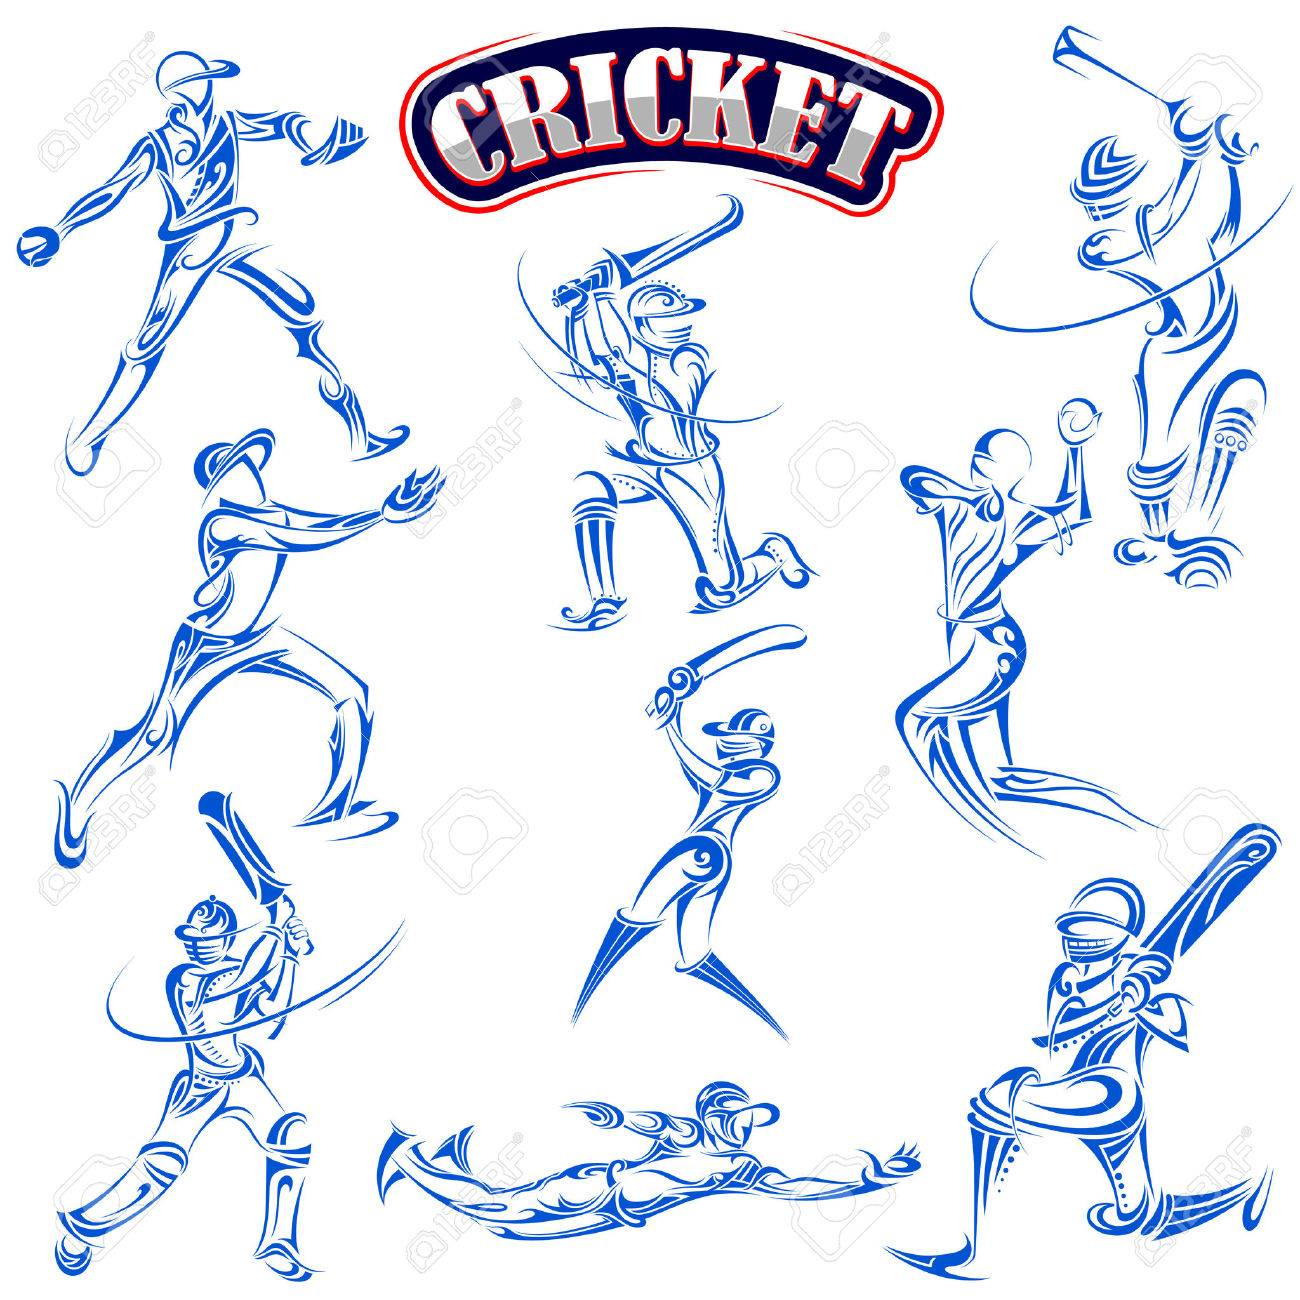 Cricket player playing with bat - 37183870